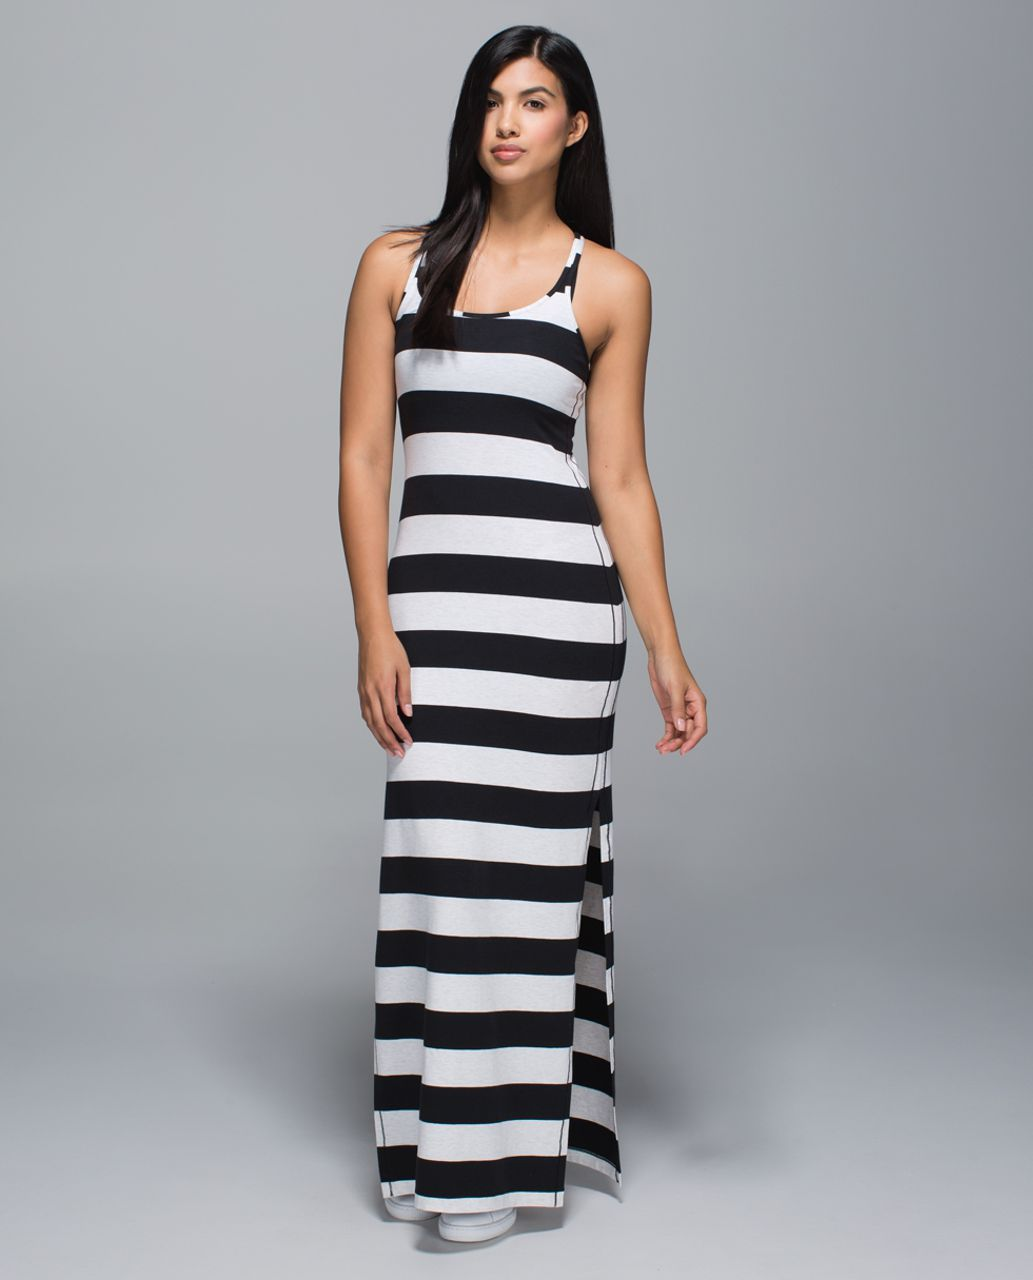 Lululemon Refresh Maxi Dress - Black / White - lulu fanatics